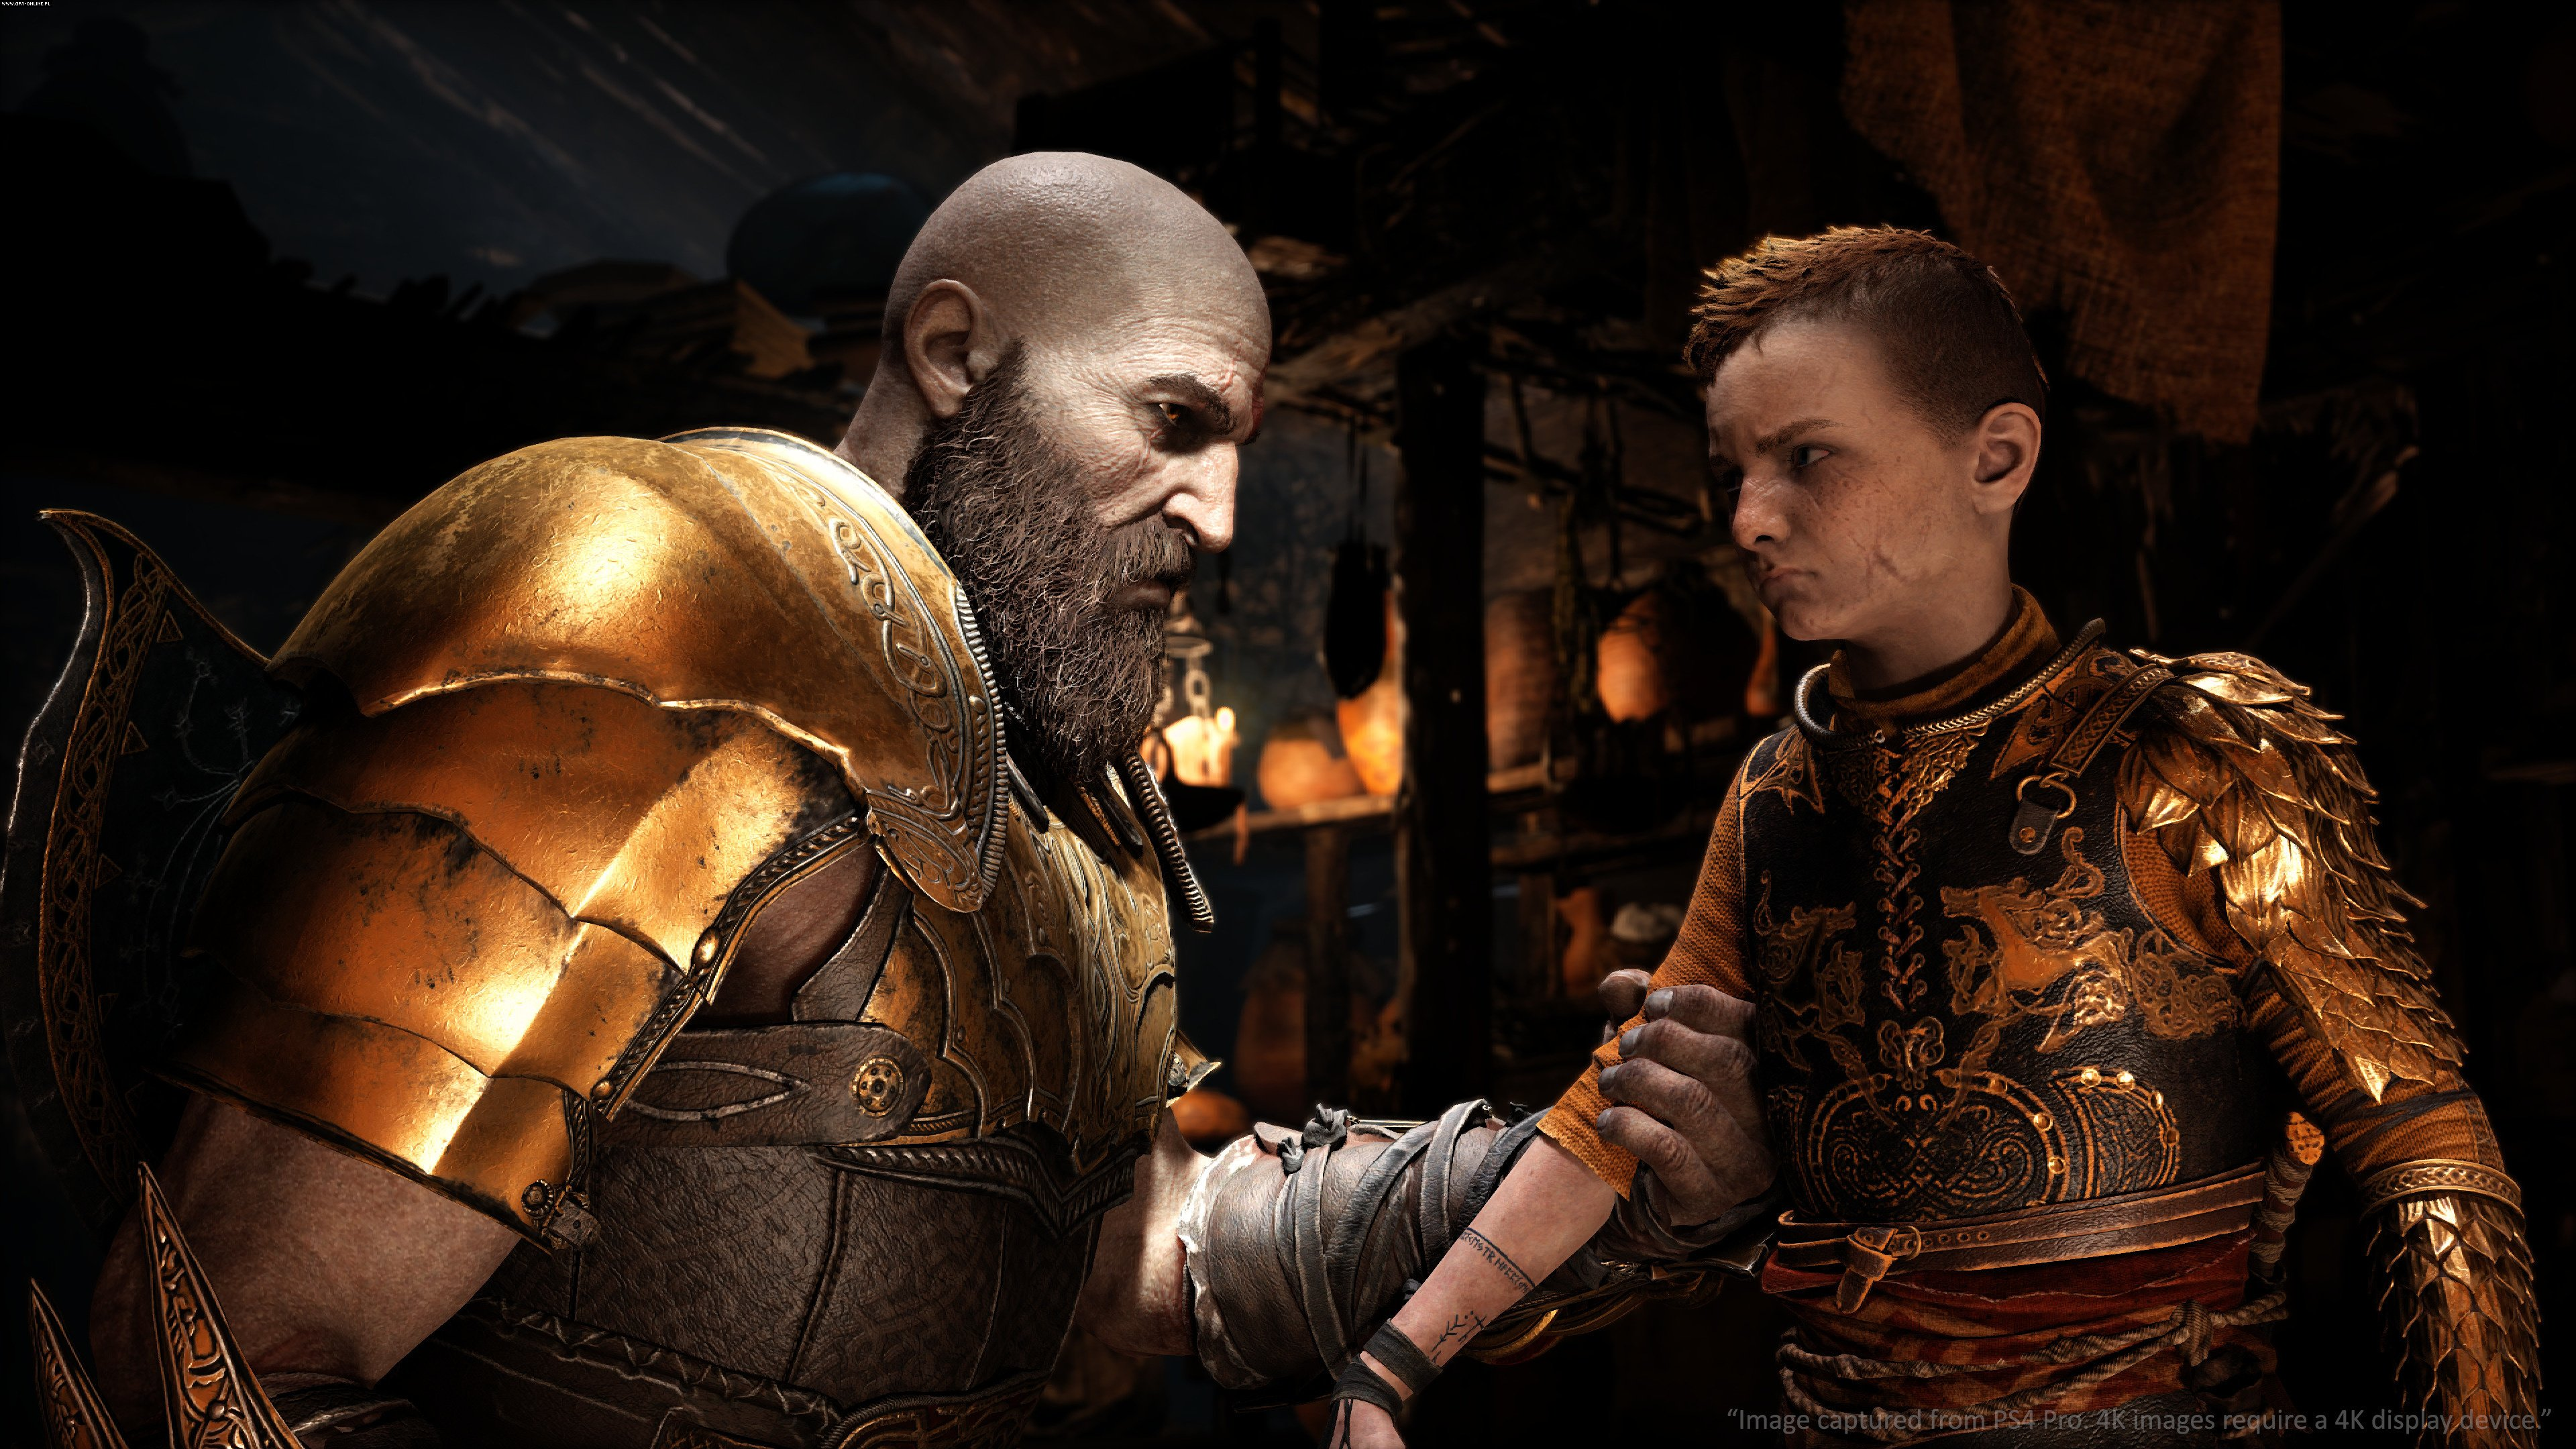 God of War PS4 Gry Screen 7/105, Sony Interactive Entertainment